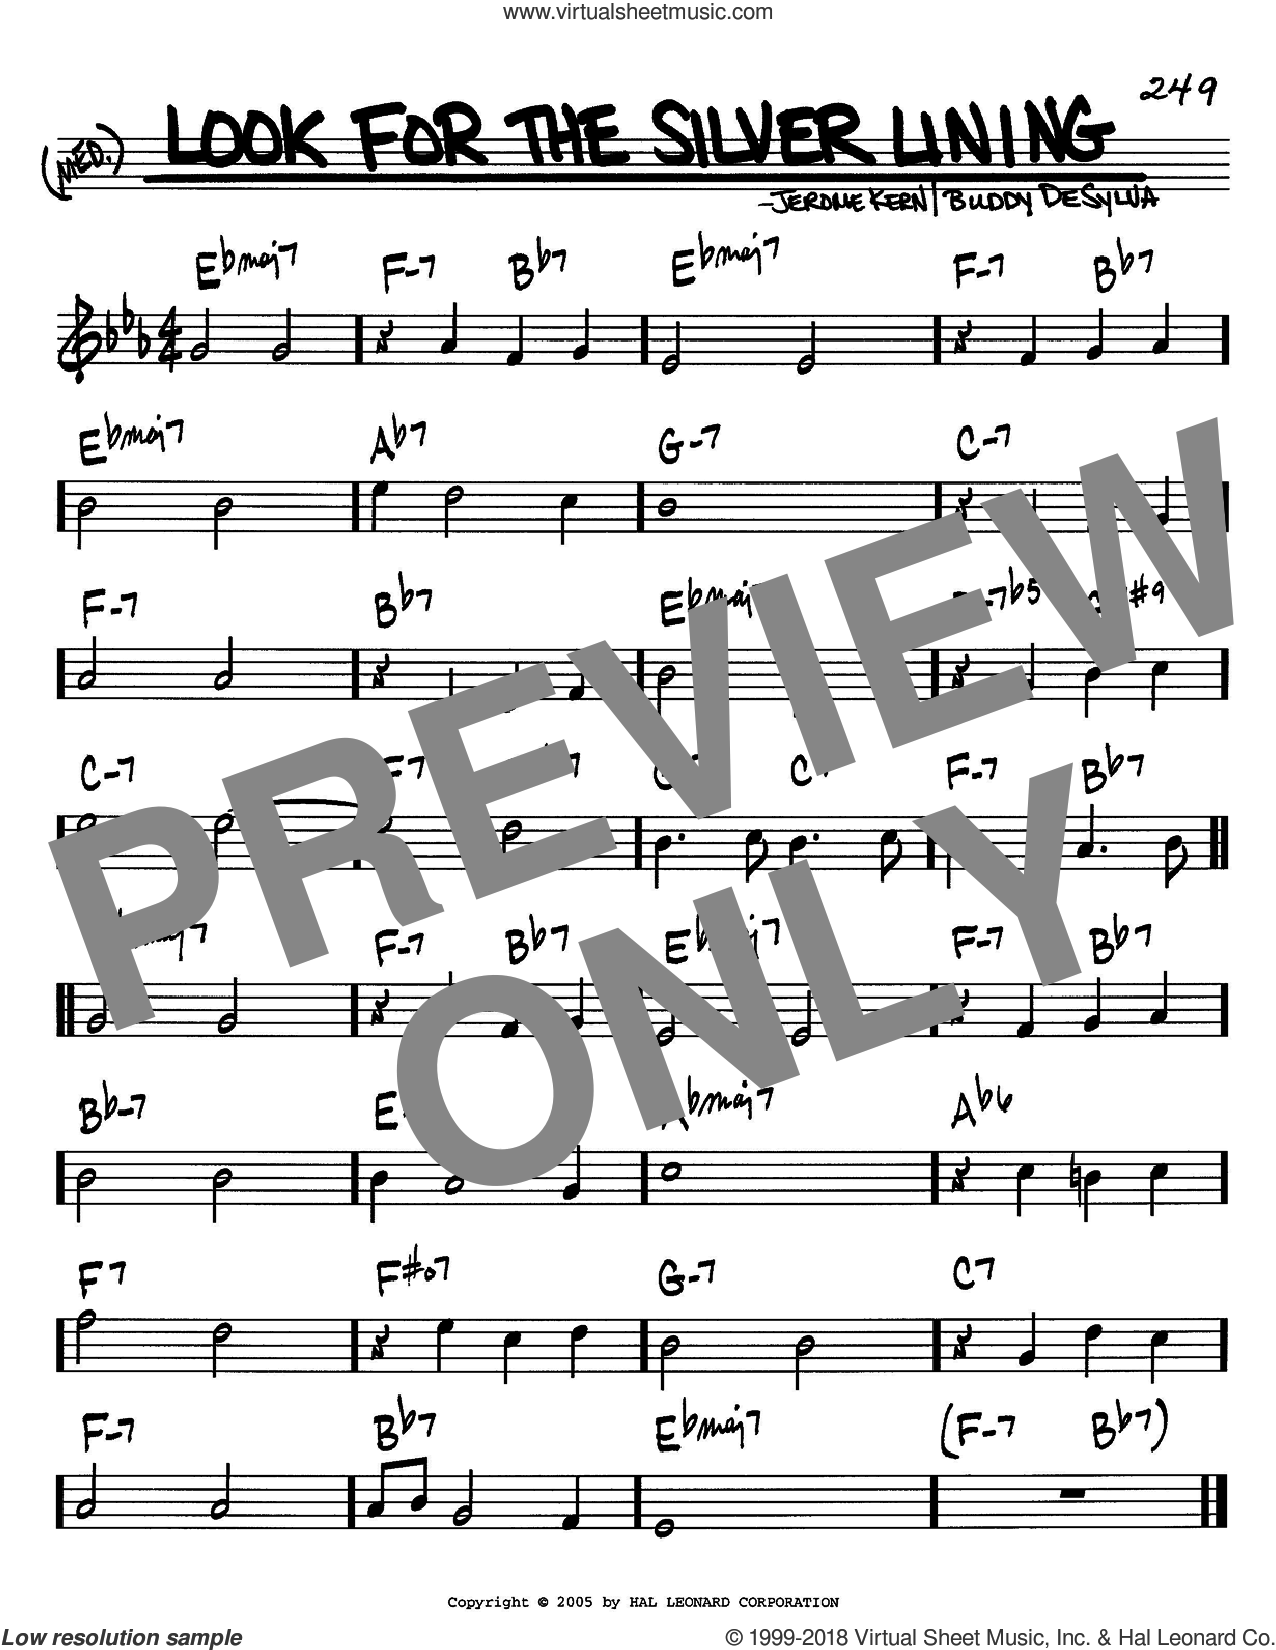 Look For The Silver Lining sheet music for voice and other instruments (C) by Buddy DeSylva and Jerome Kern. Score Image Preview.